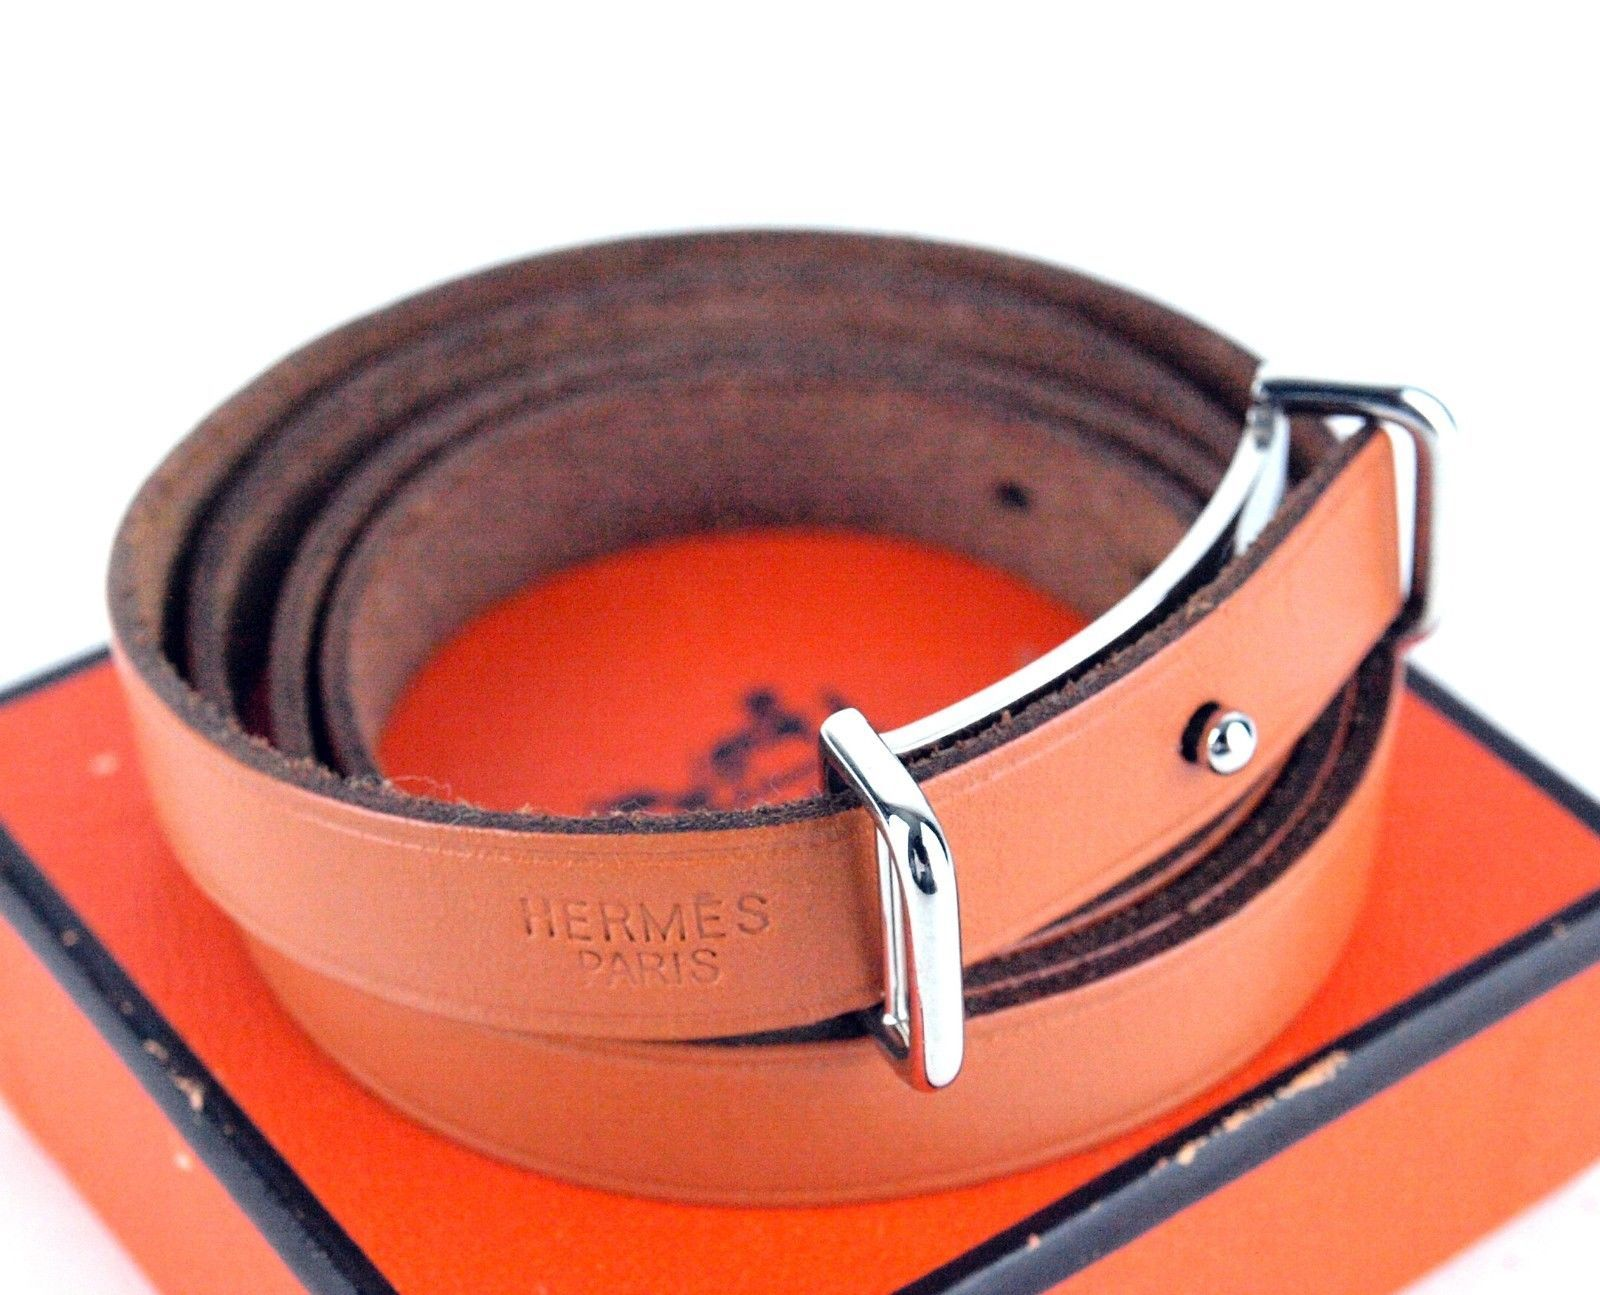 Primary image for Auth Hermes Brown Leather Api 3 Long Bracelet Wristband Belt Accessory w/ Box